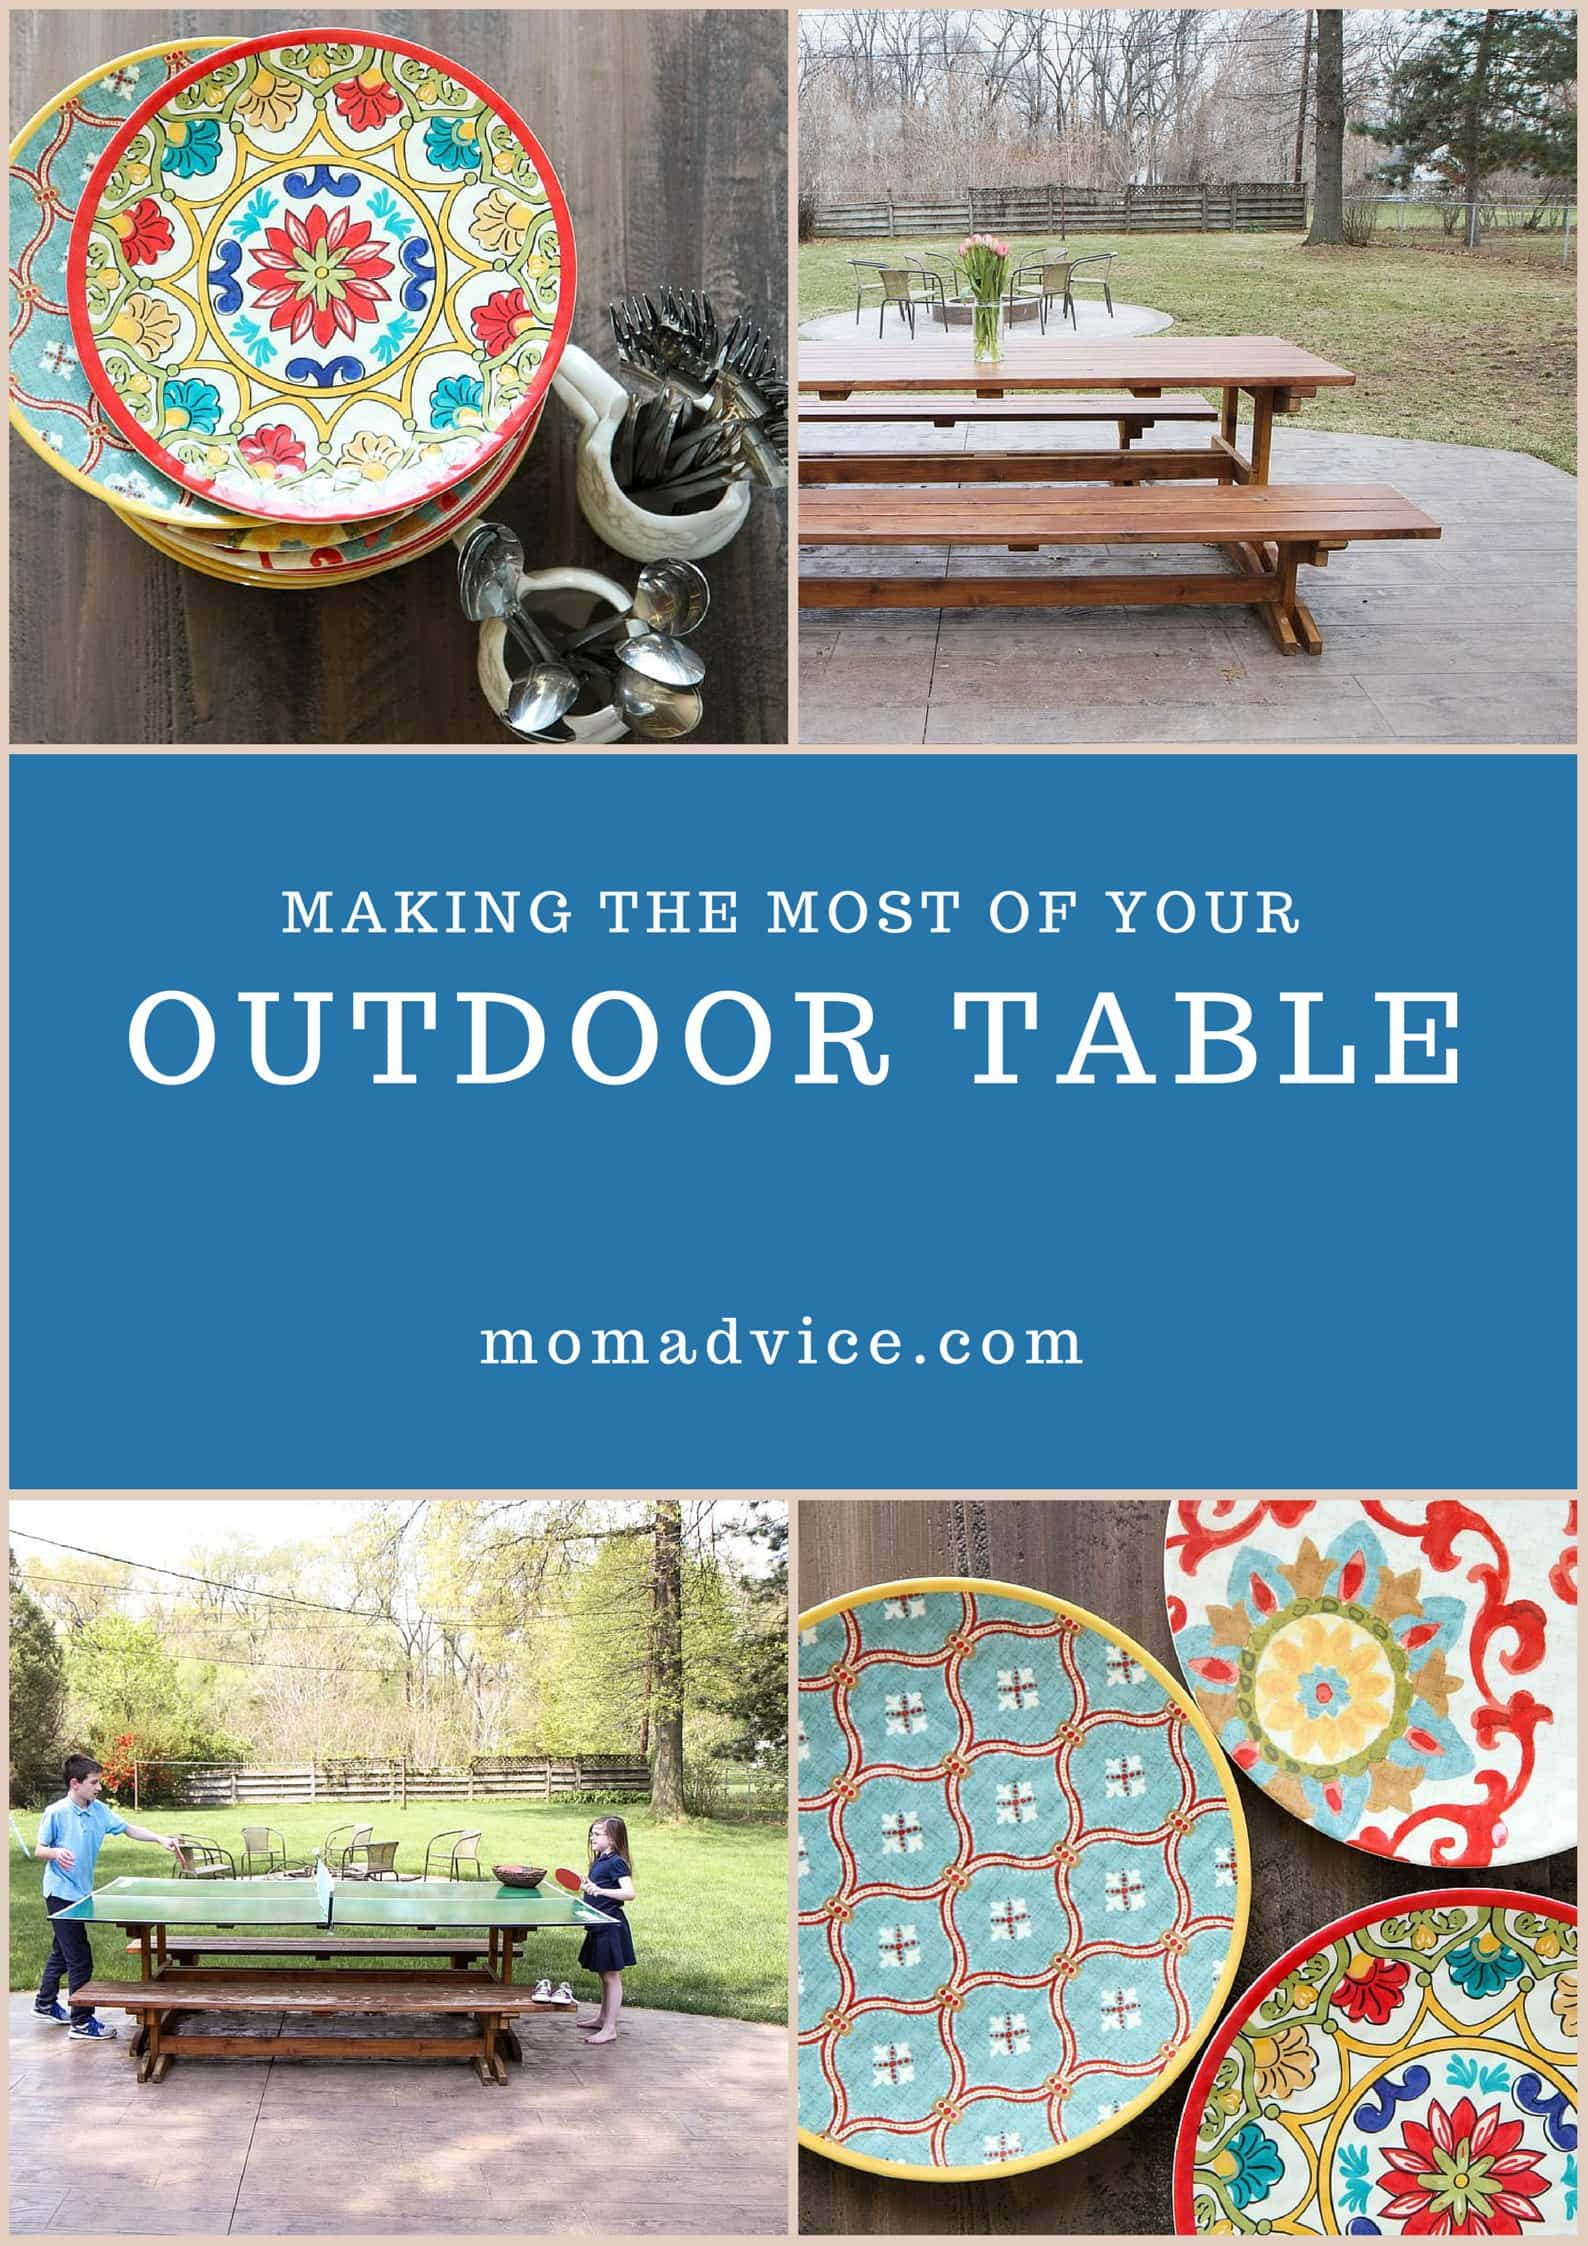 Making the Most of Your Outdoor Table from MomAdvice.com